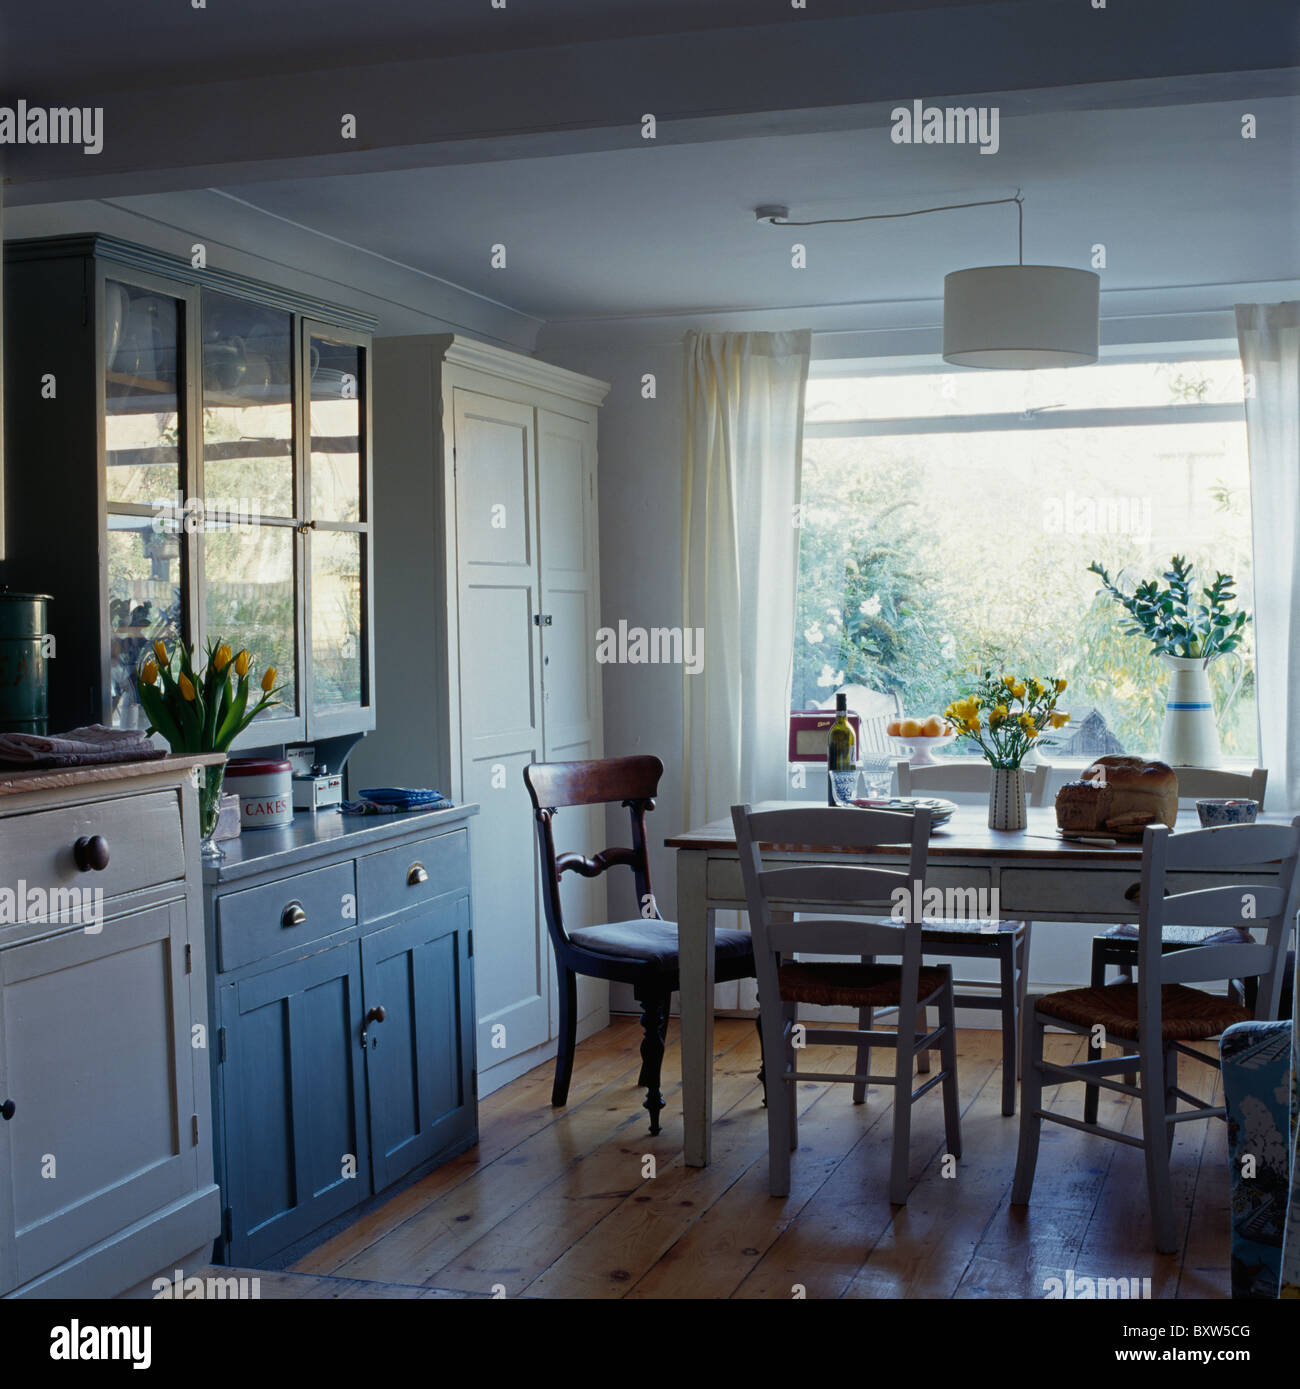 Traditional Furniture Dressers Stock Photos & Traditional Furniture ...